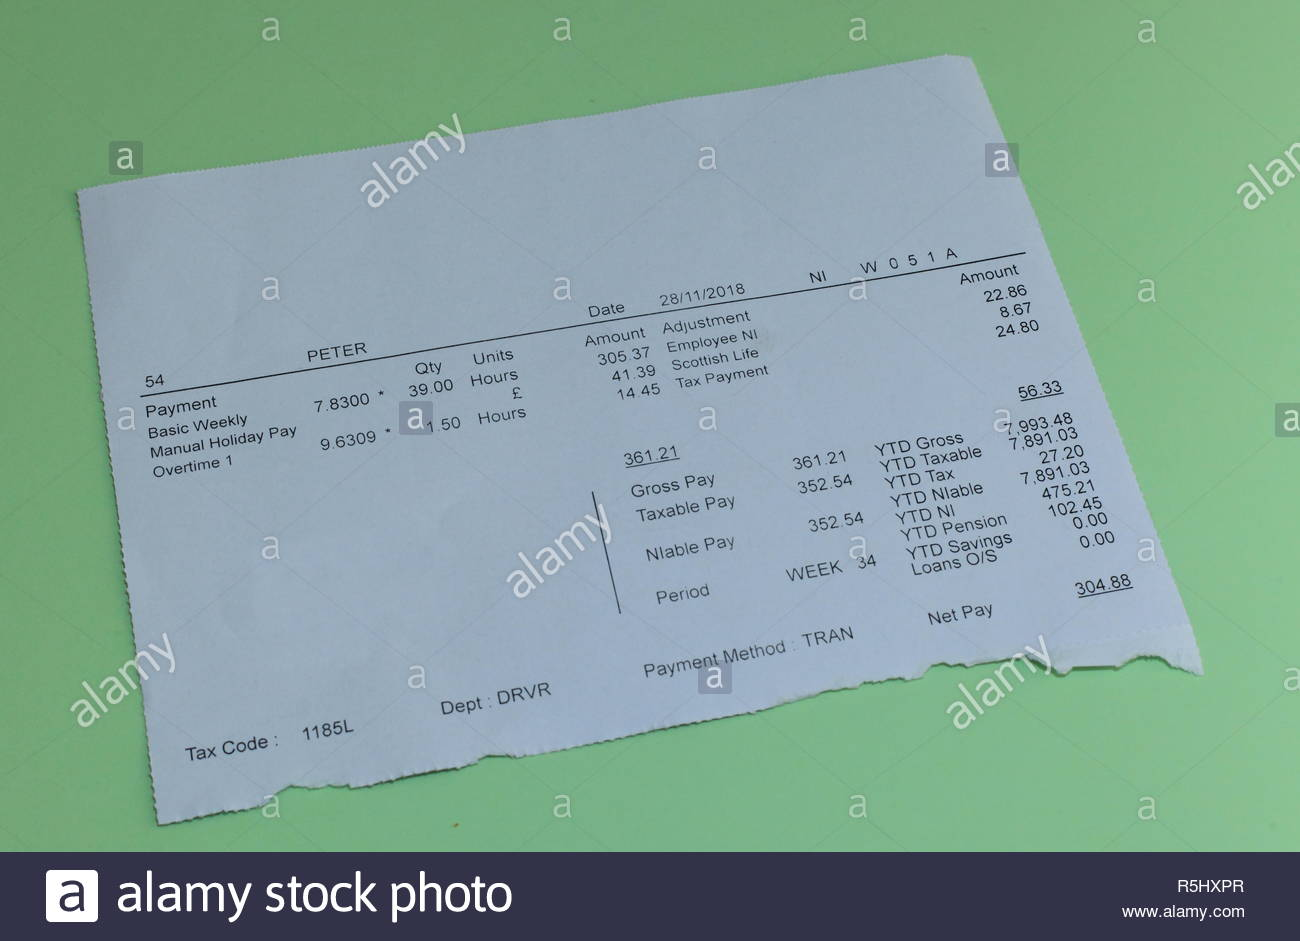 A Weekly Pay-Slip Displaying Minimum Wage On Green Background - Stock Image